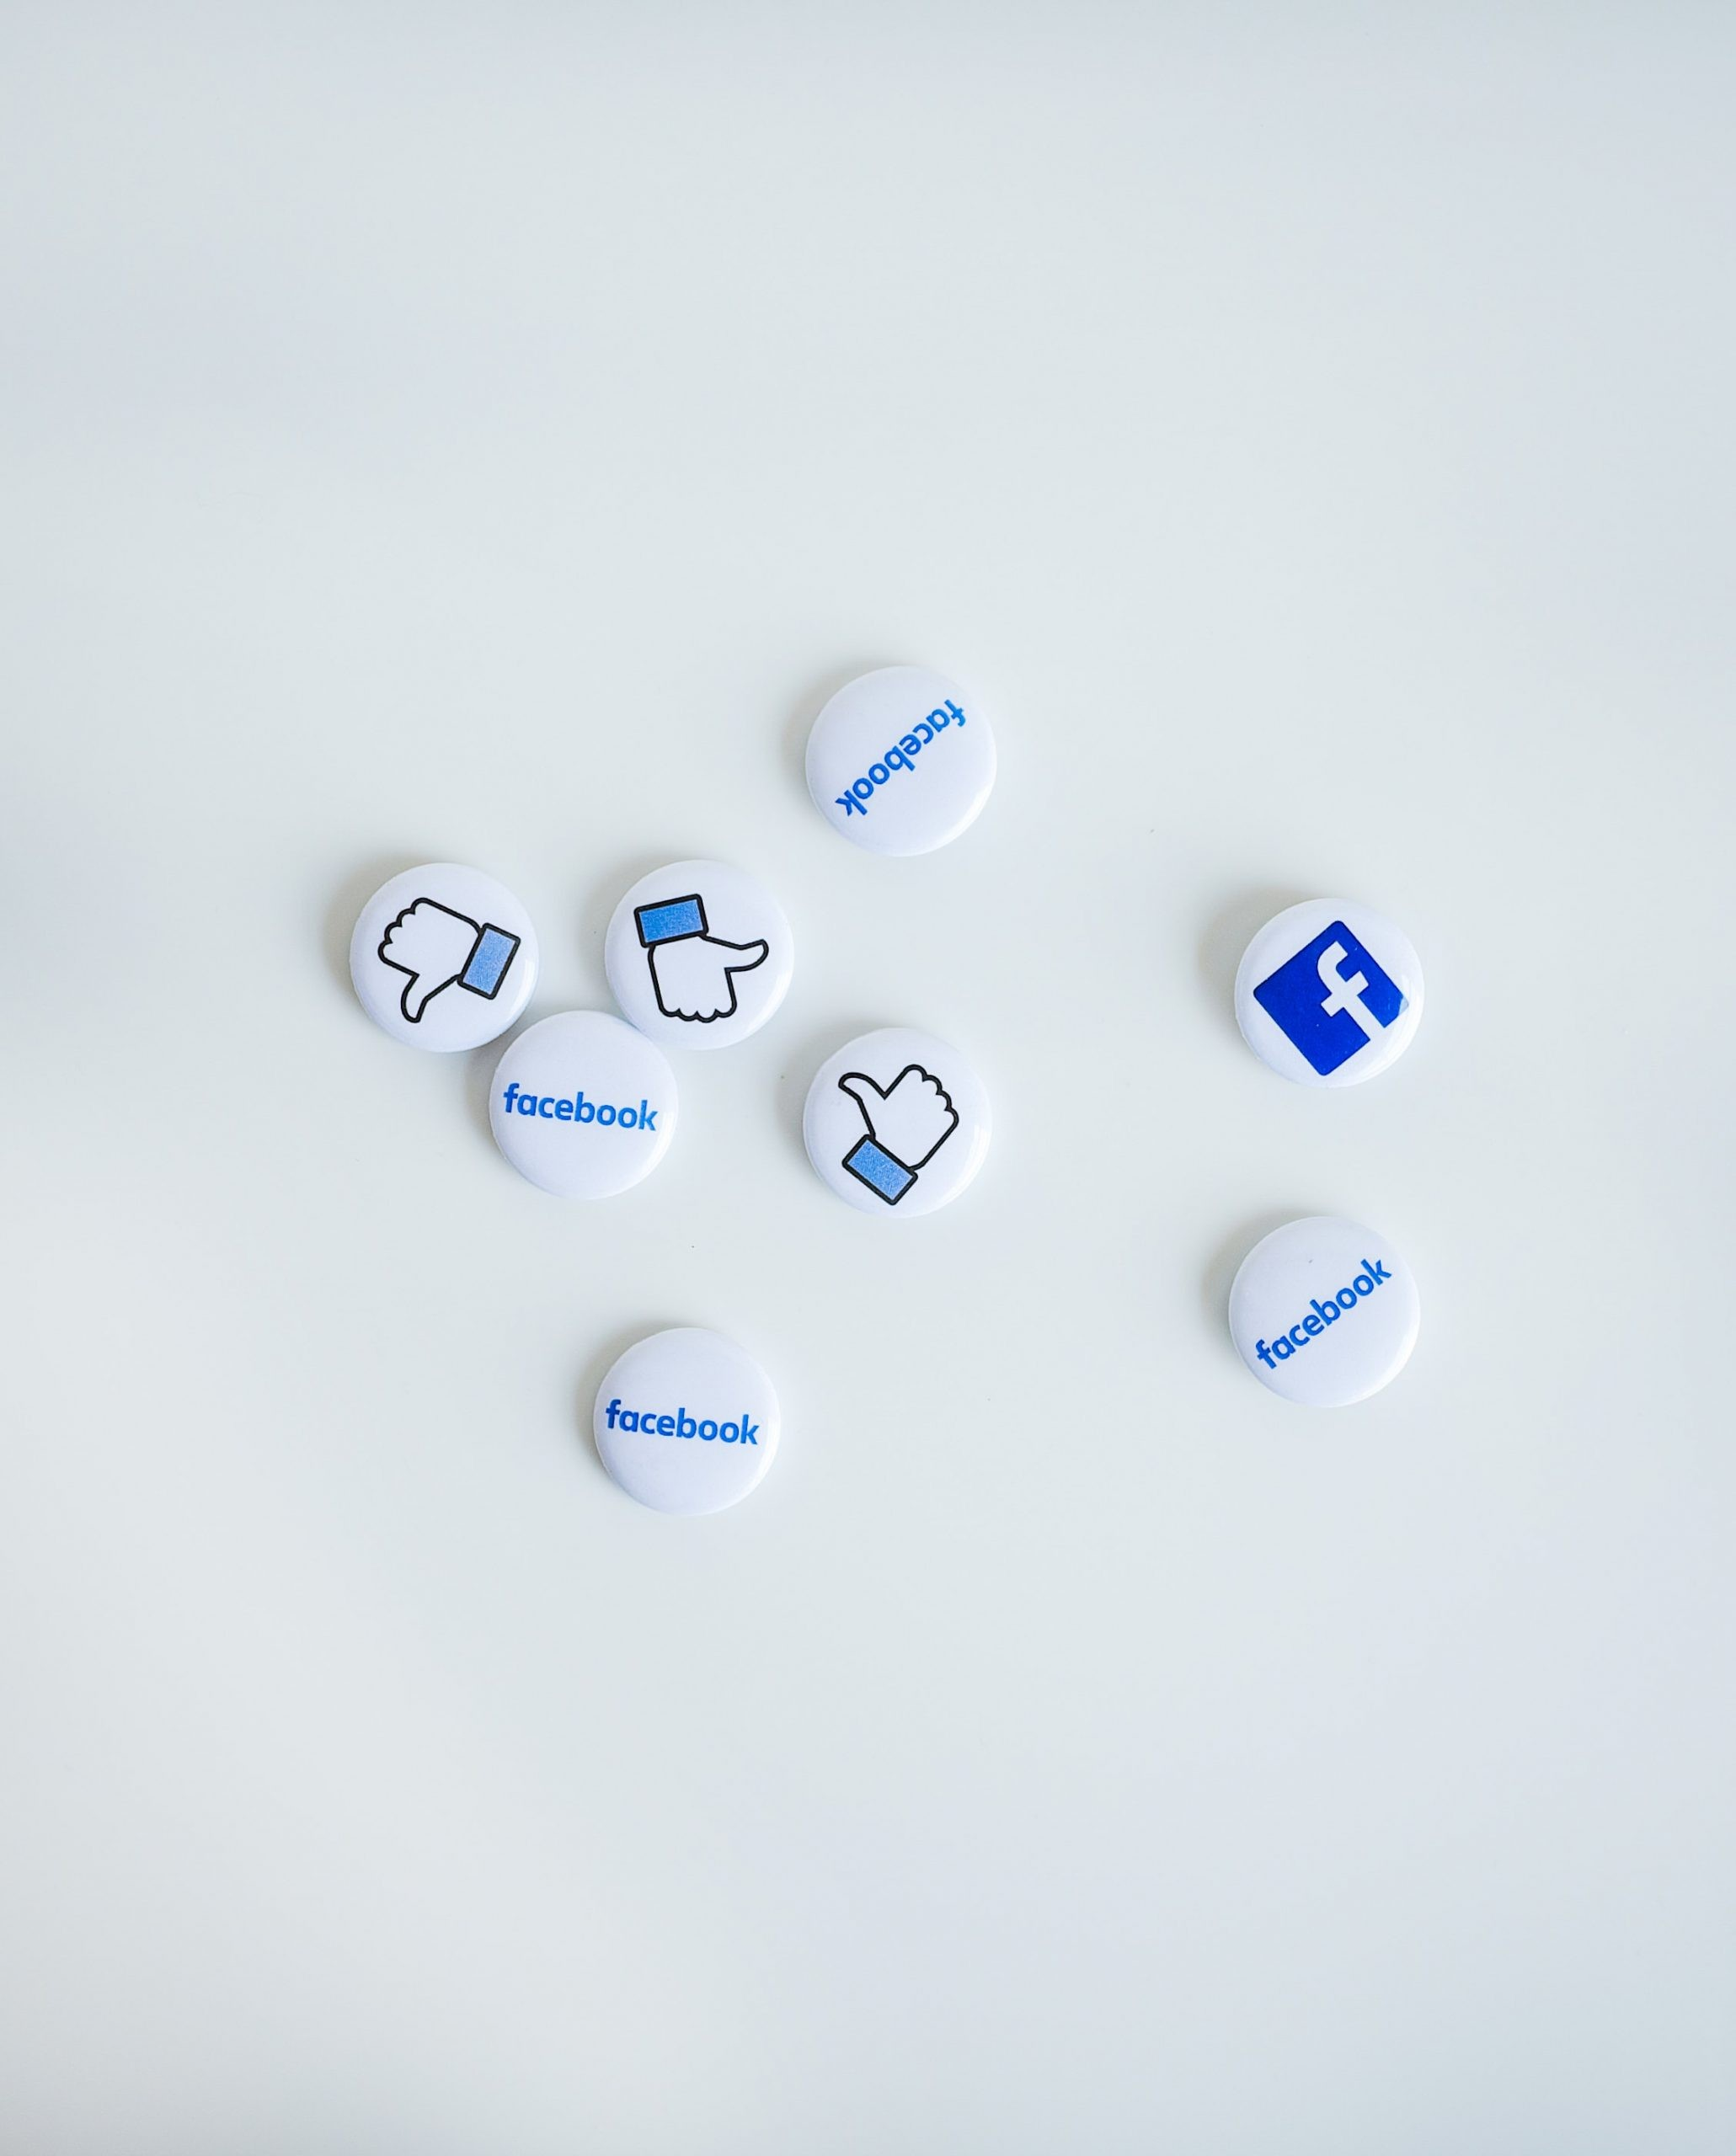 Facebook, magnets with thumbs up and other icons